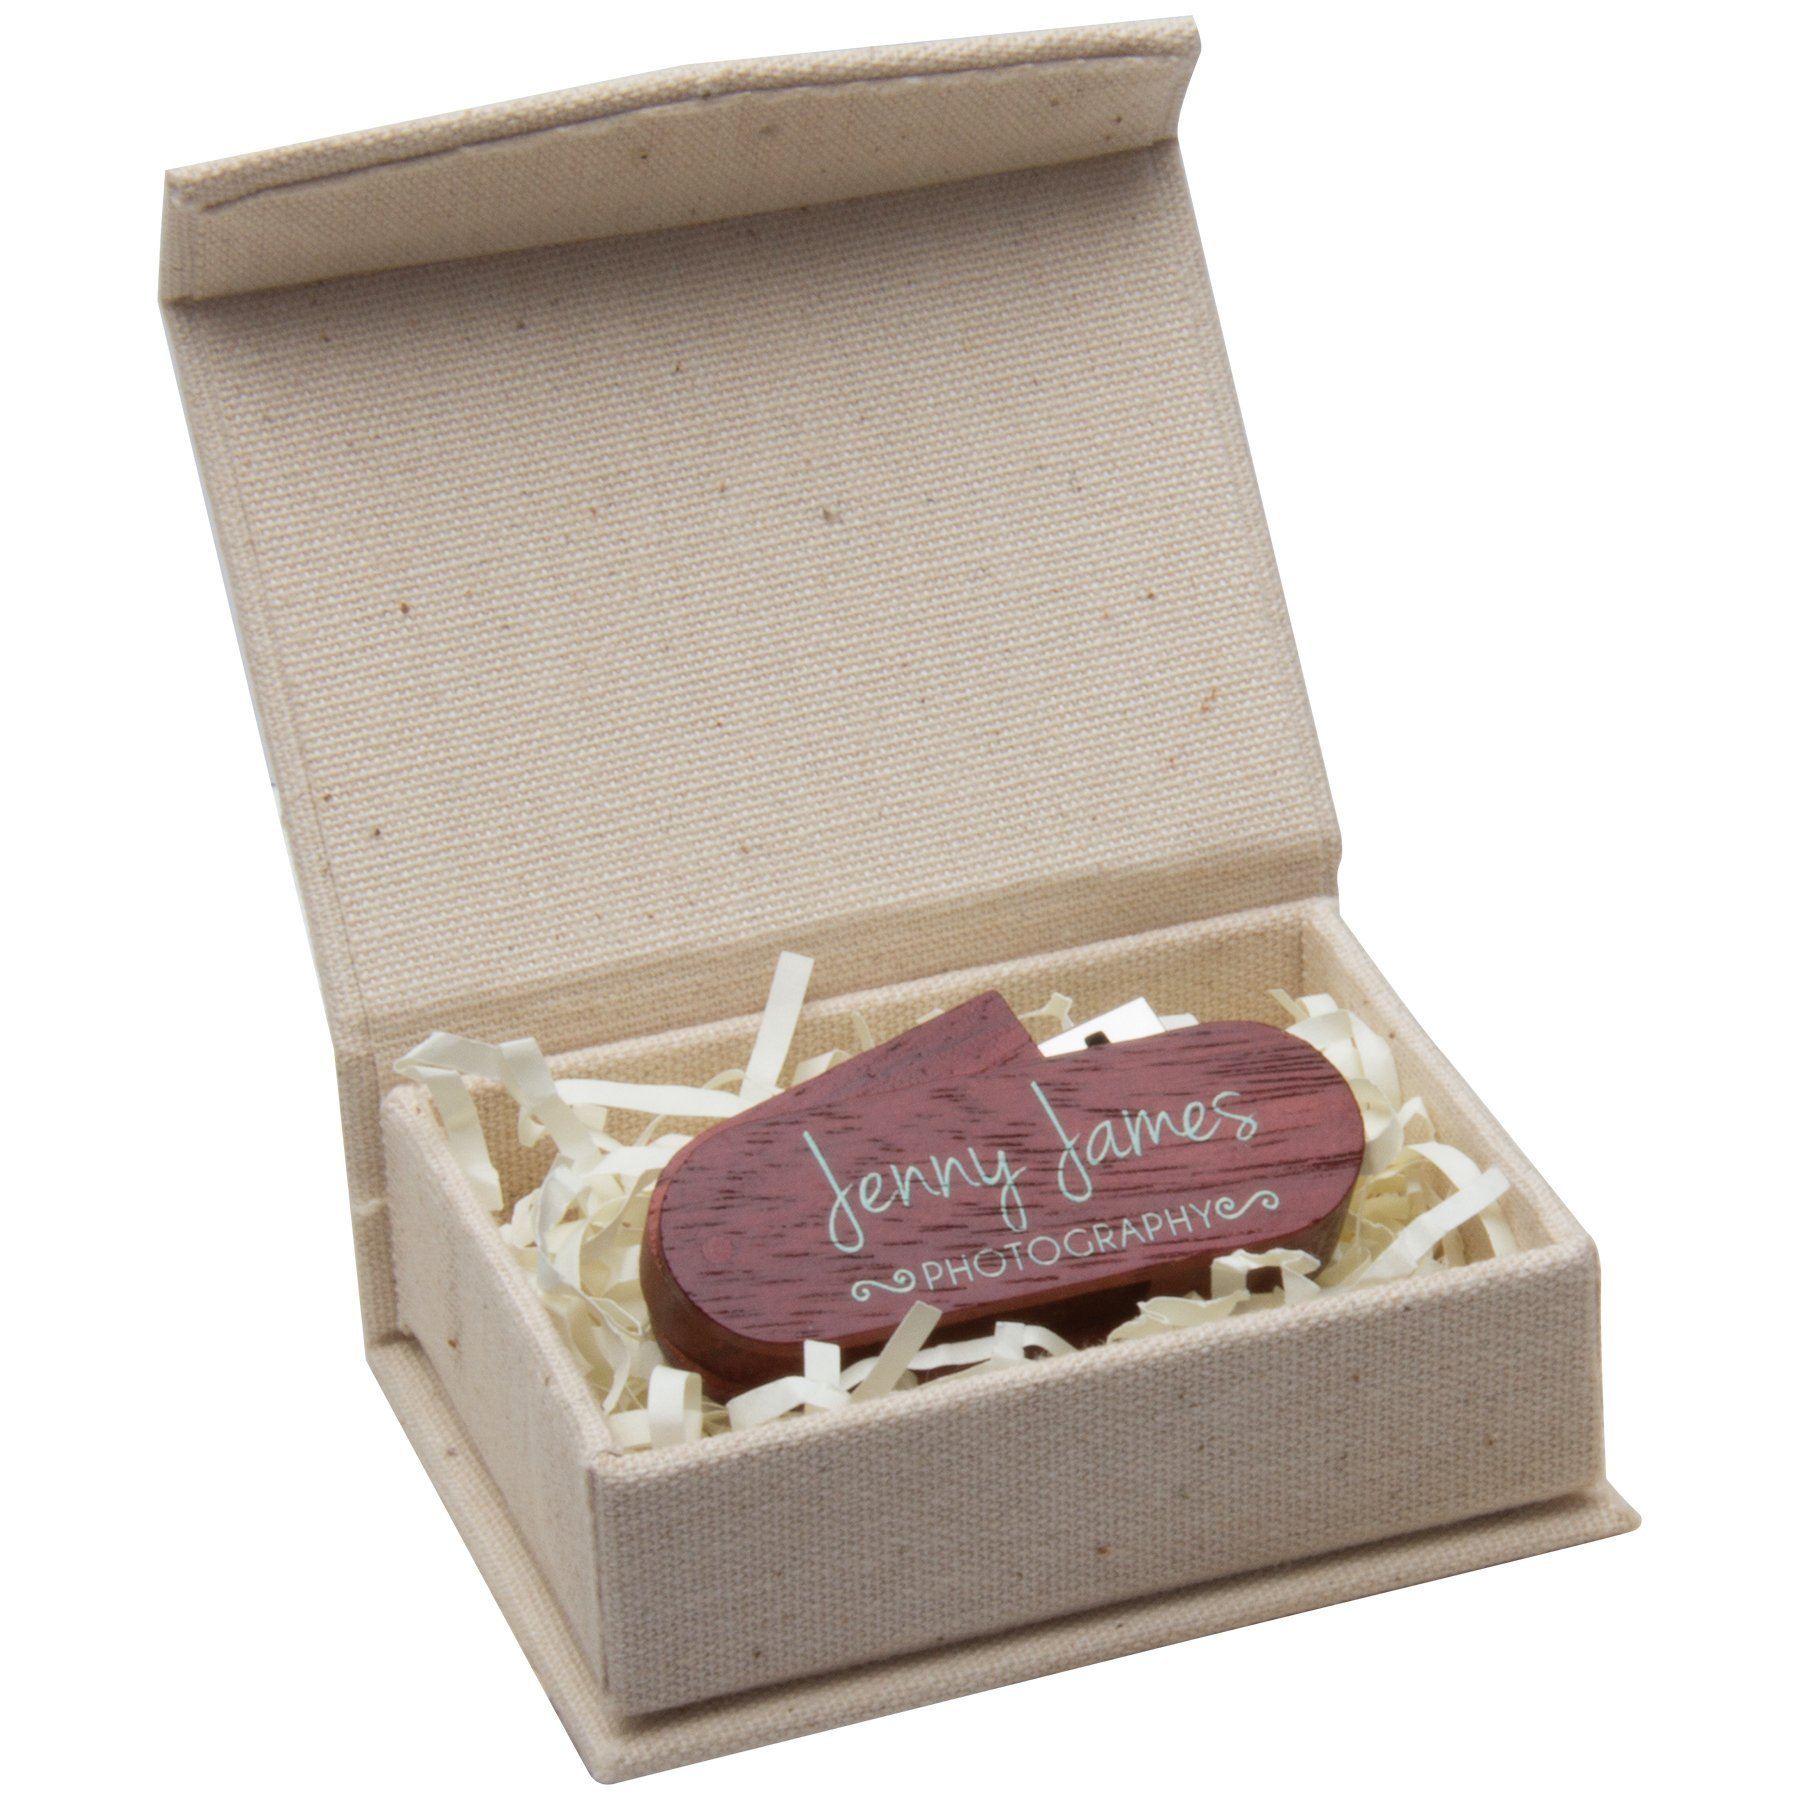 Small Linen Box for Flash Drive or Jewelry